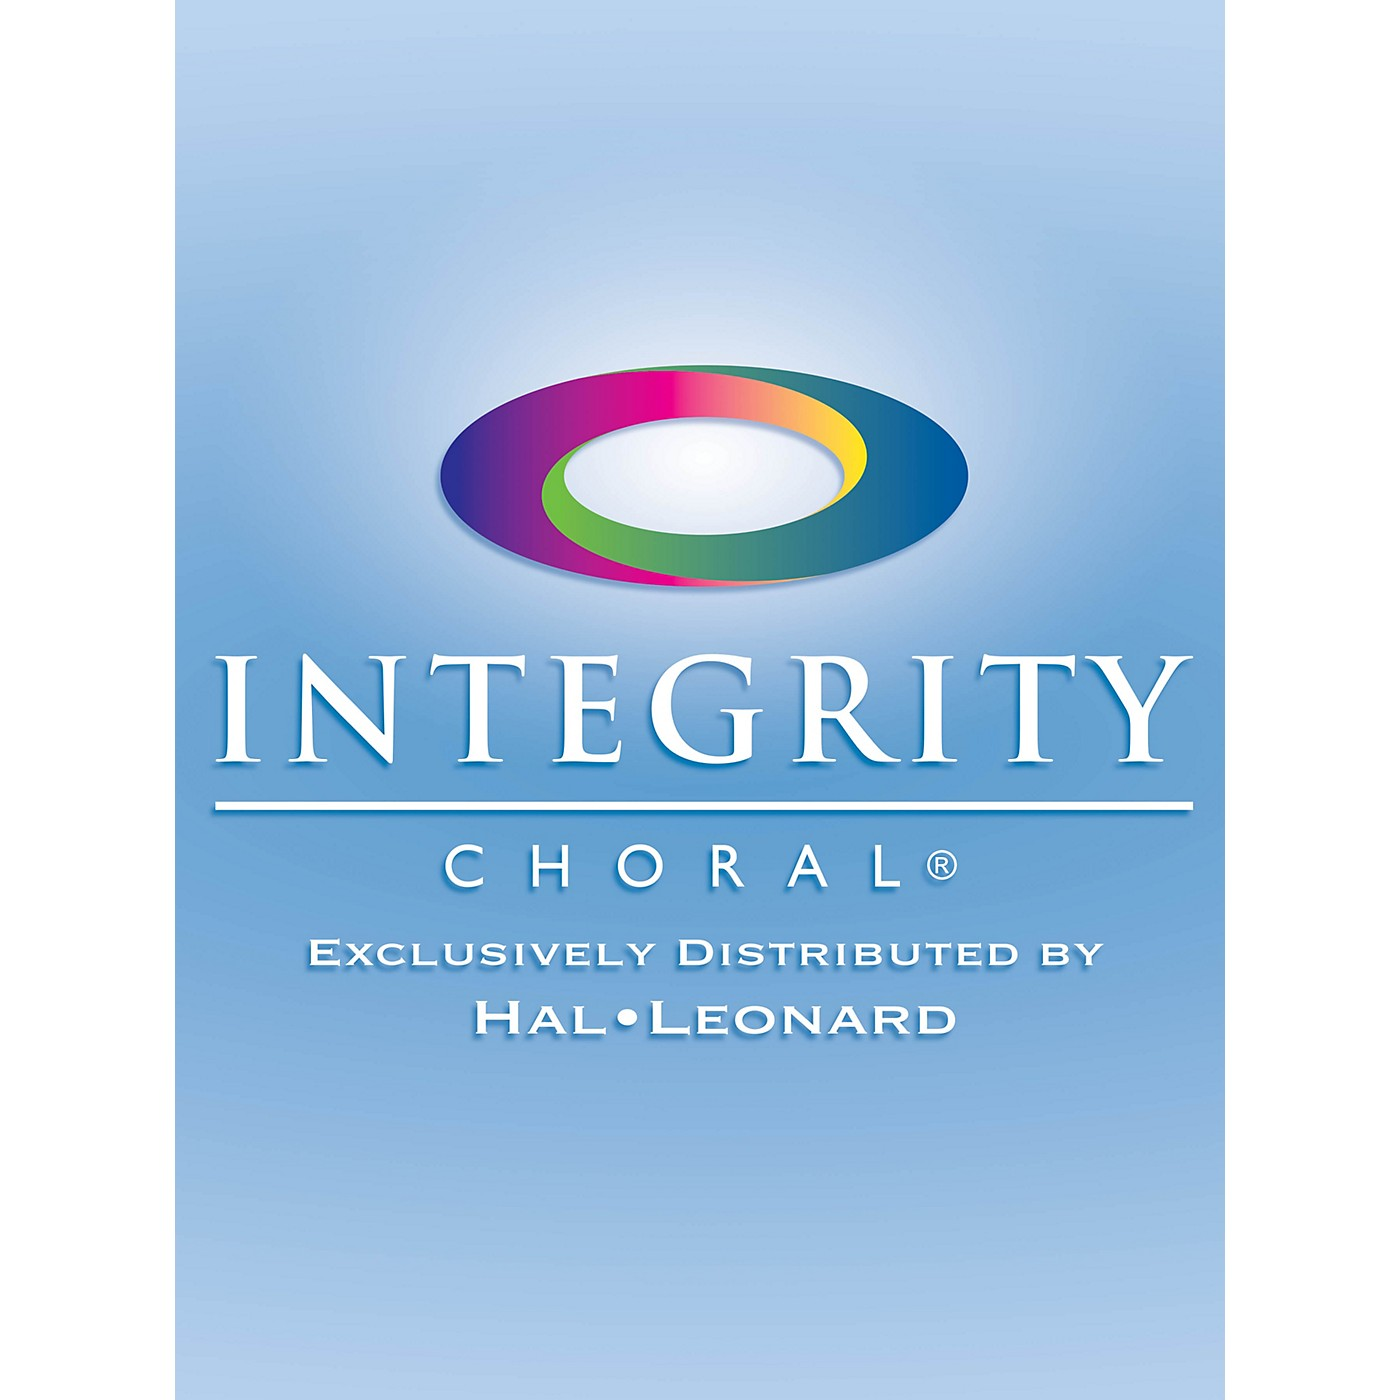 Integrity Choral Made Me Glad Instrumental Accompaniment Arranged by BJ Davis/Richard Kingsmore/J. Daniel Smith thumbnail